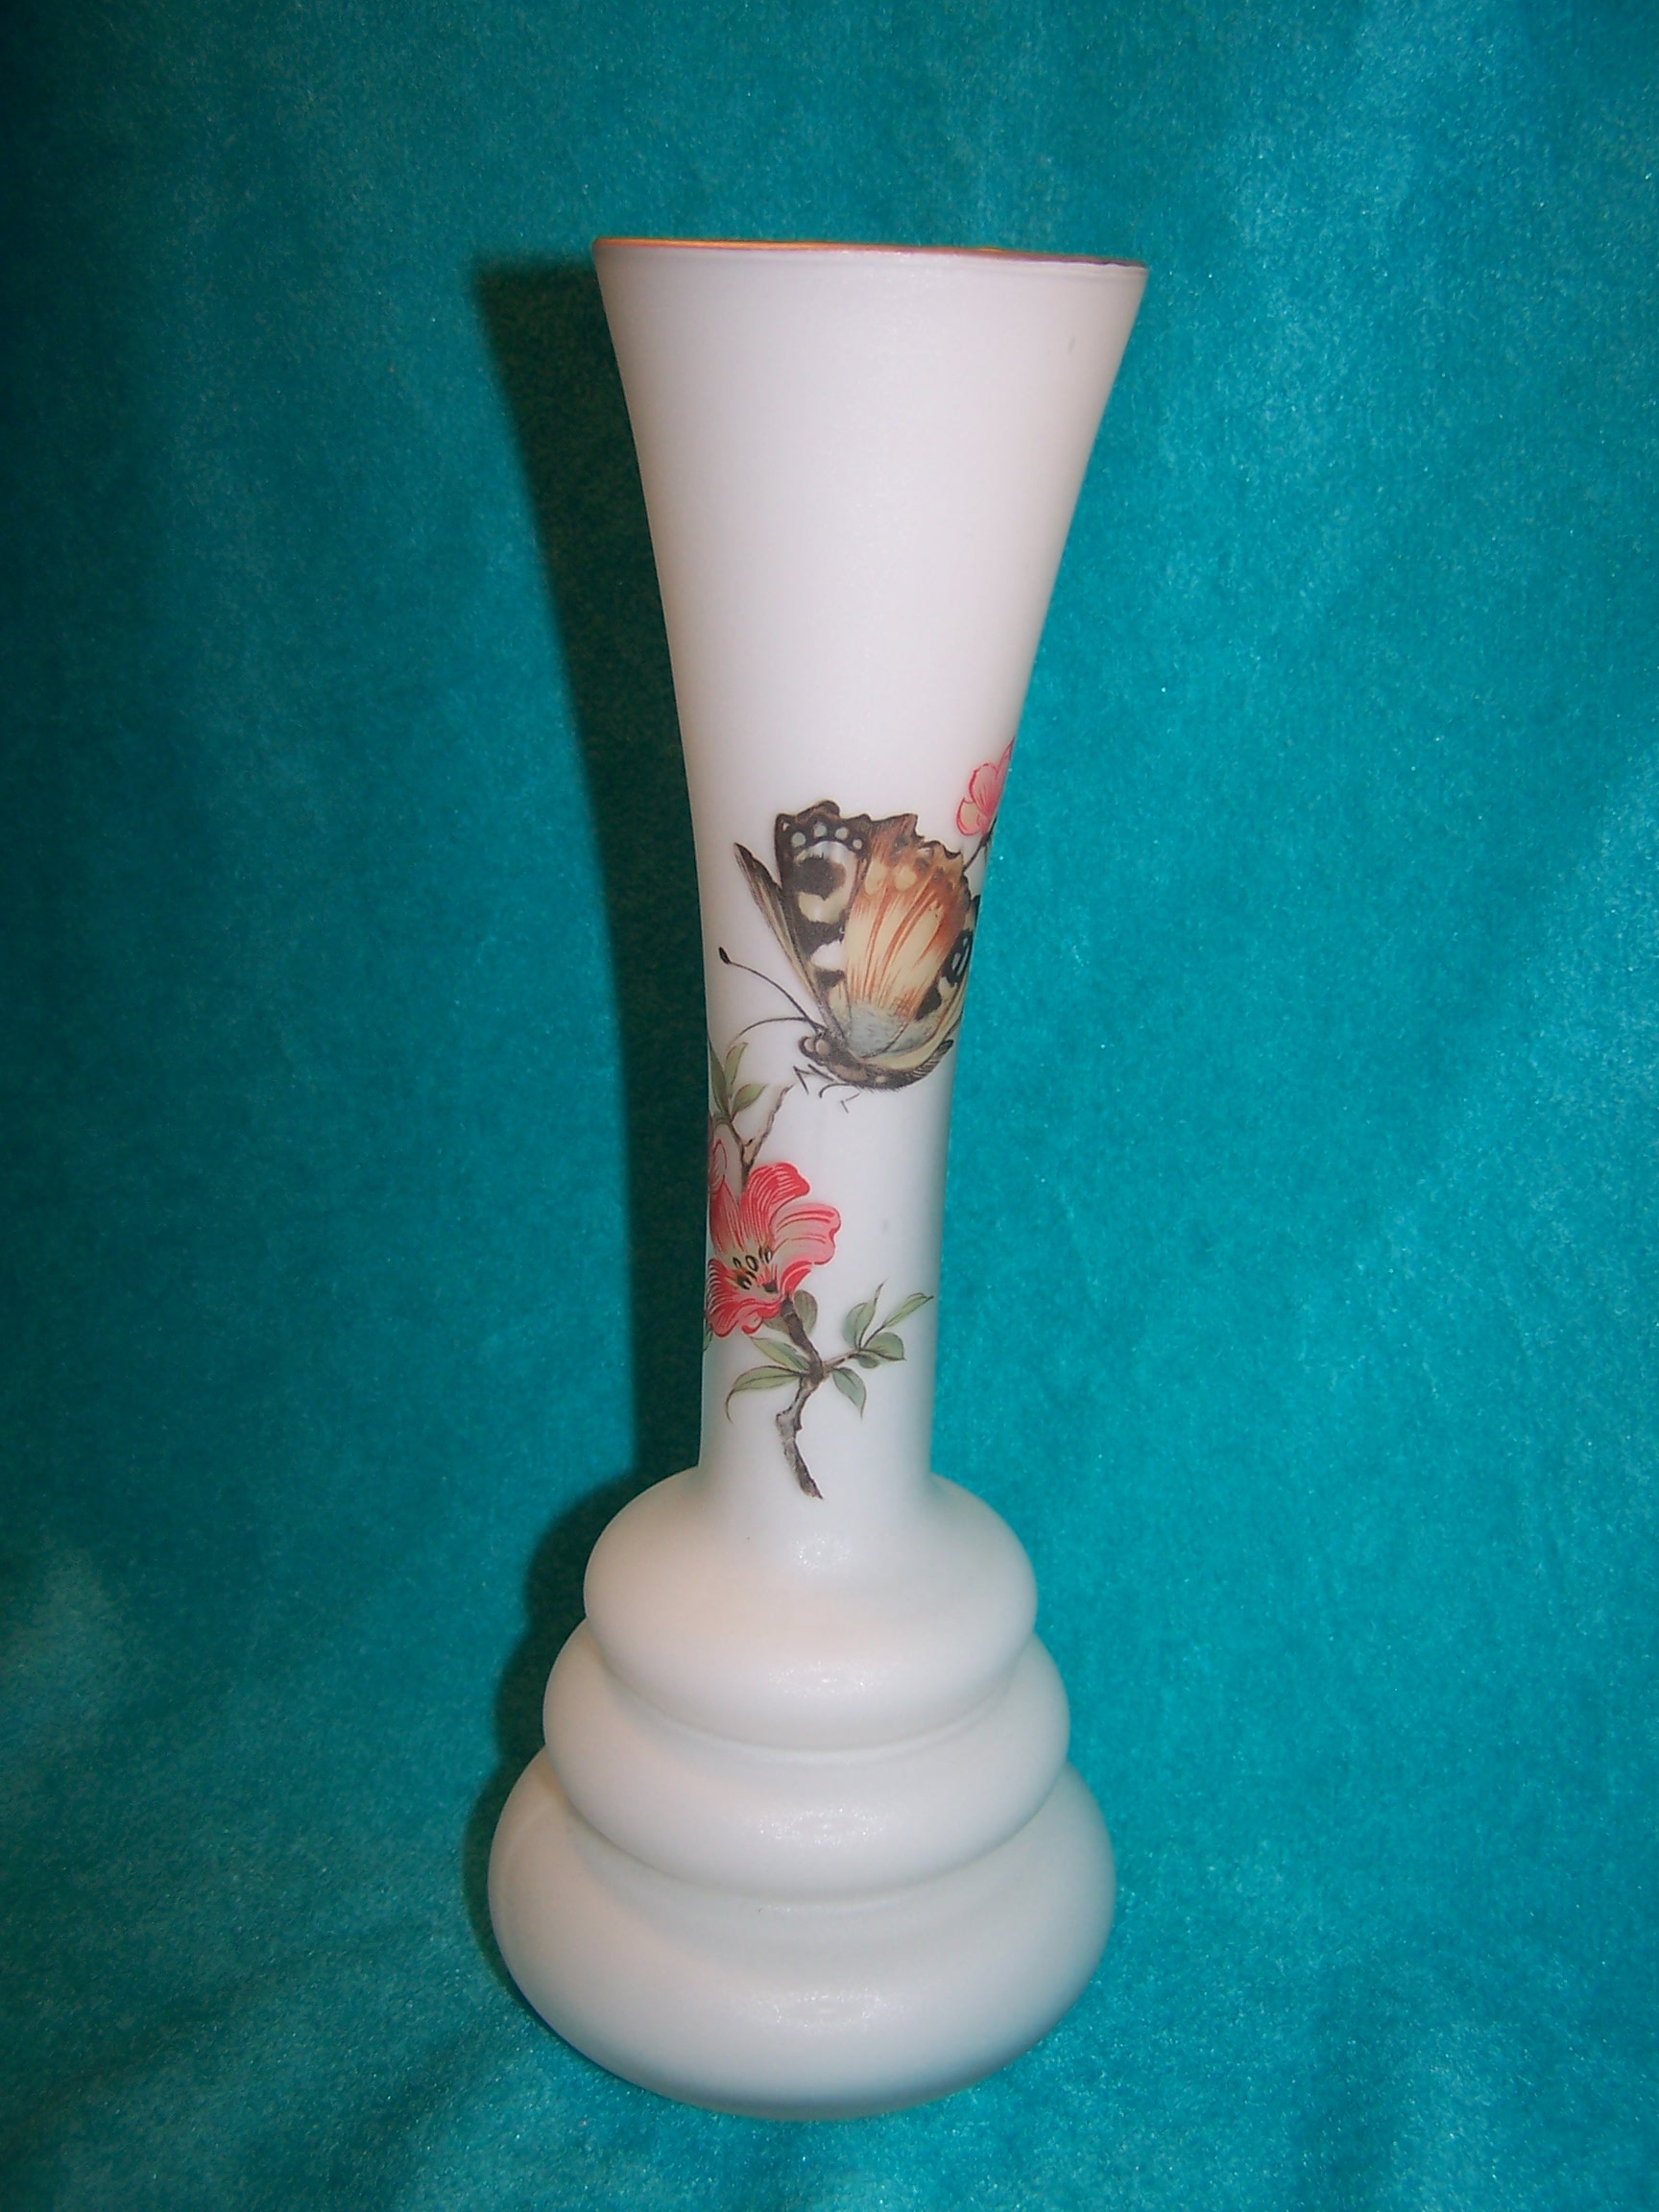 Image 6 of Milk Glass Butterfly Vase, Italian Satin Glass